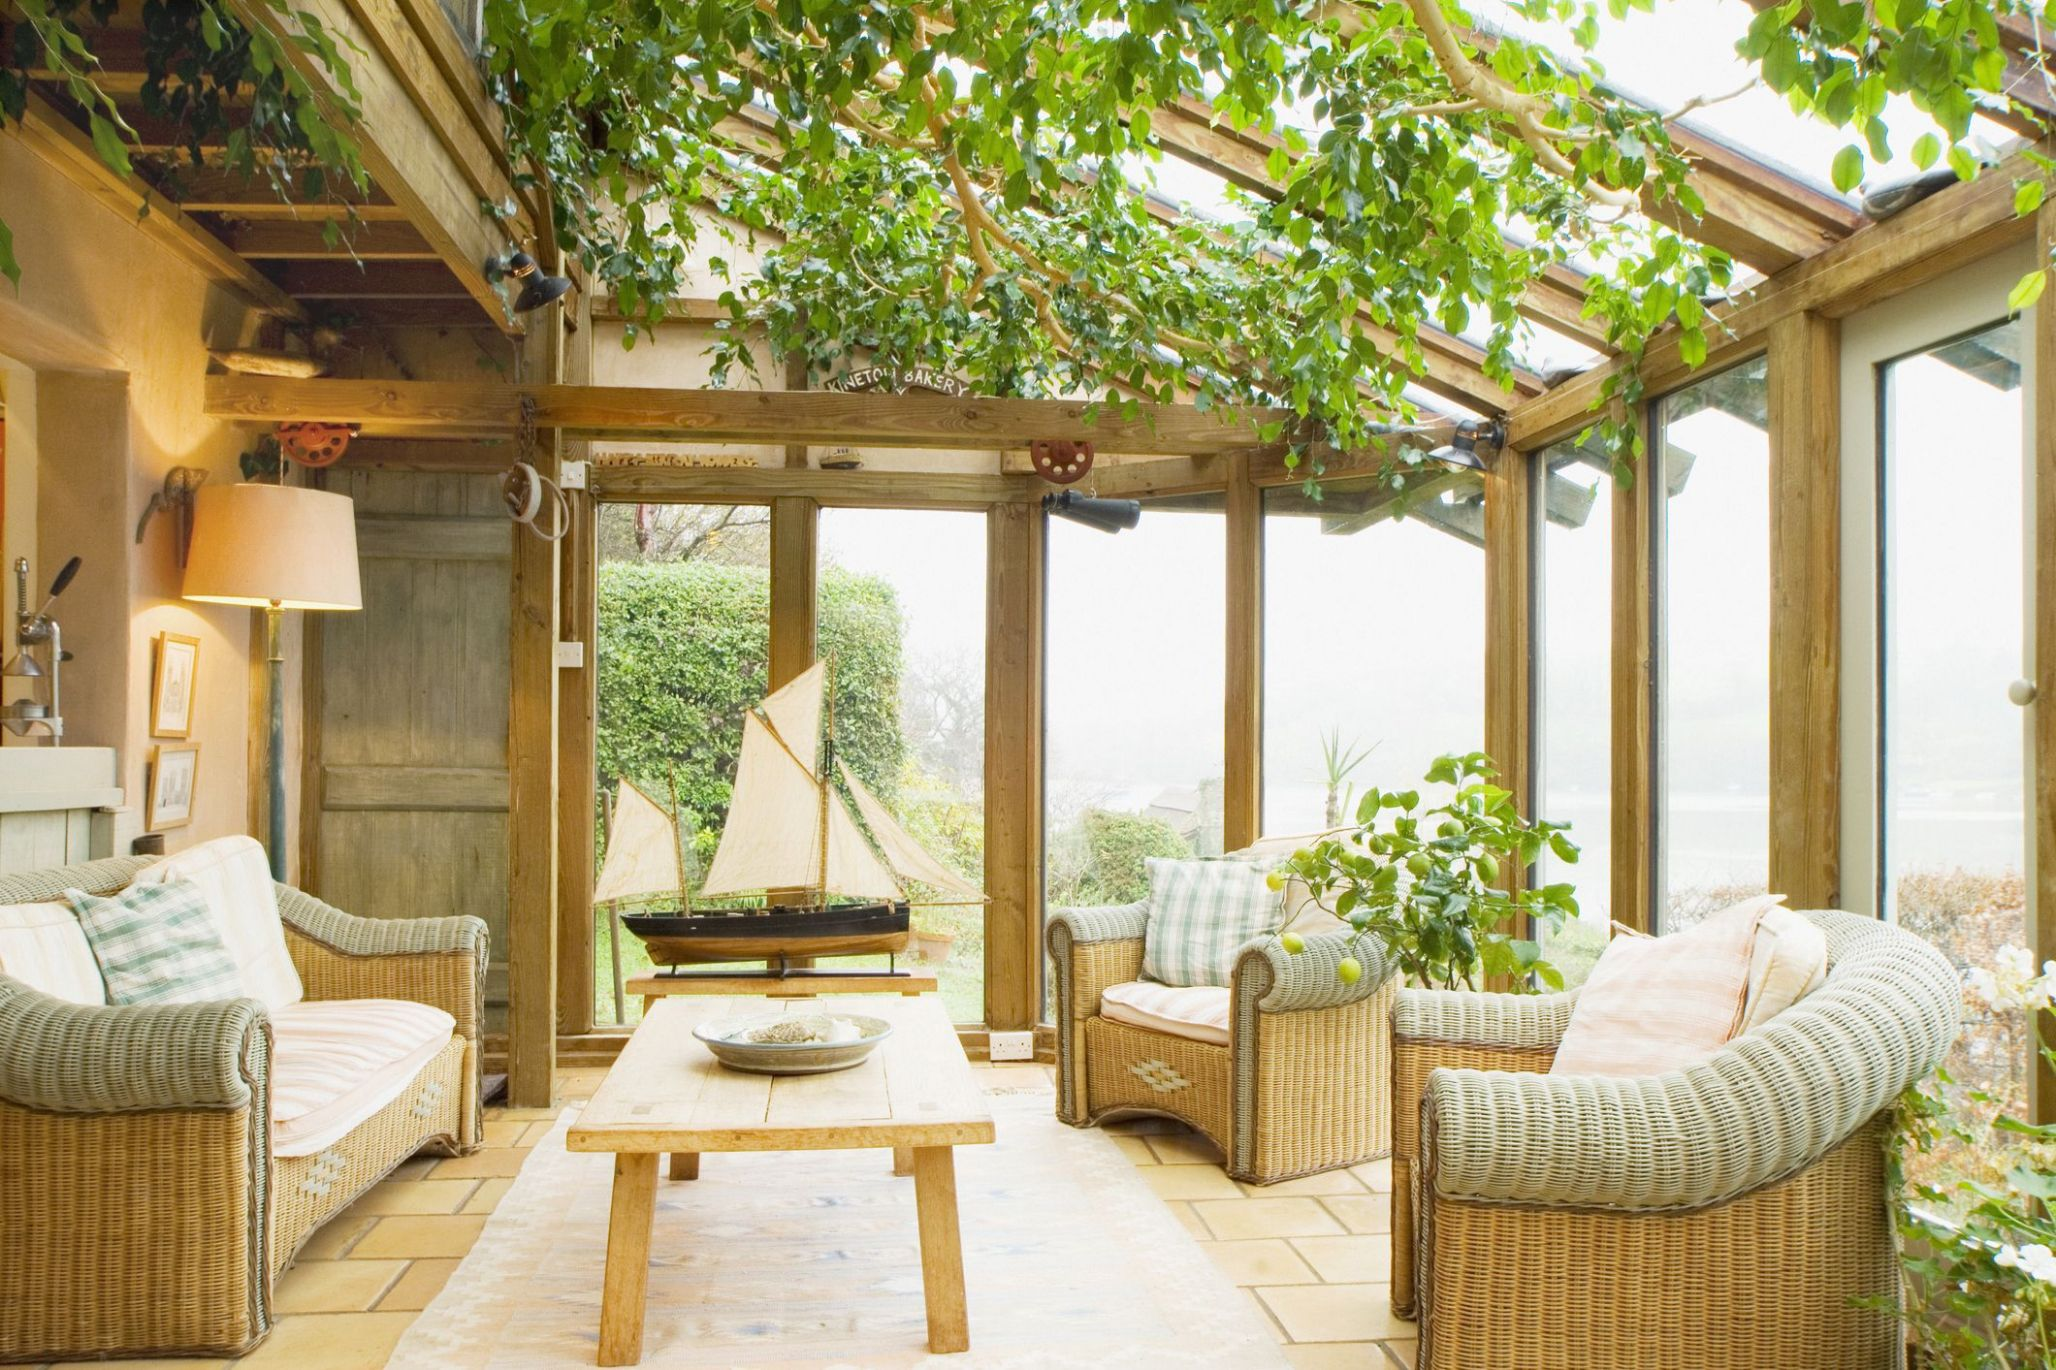 12 Best Sunroom Ideas - Gorgeous Sunroom Designs and Pictures